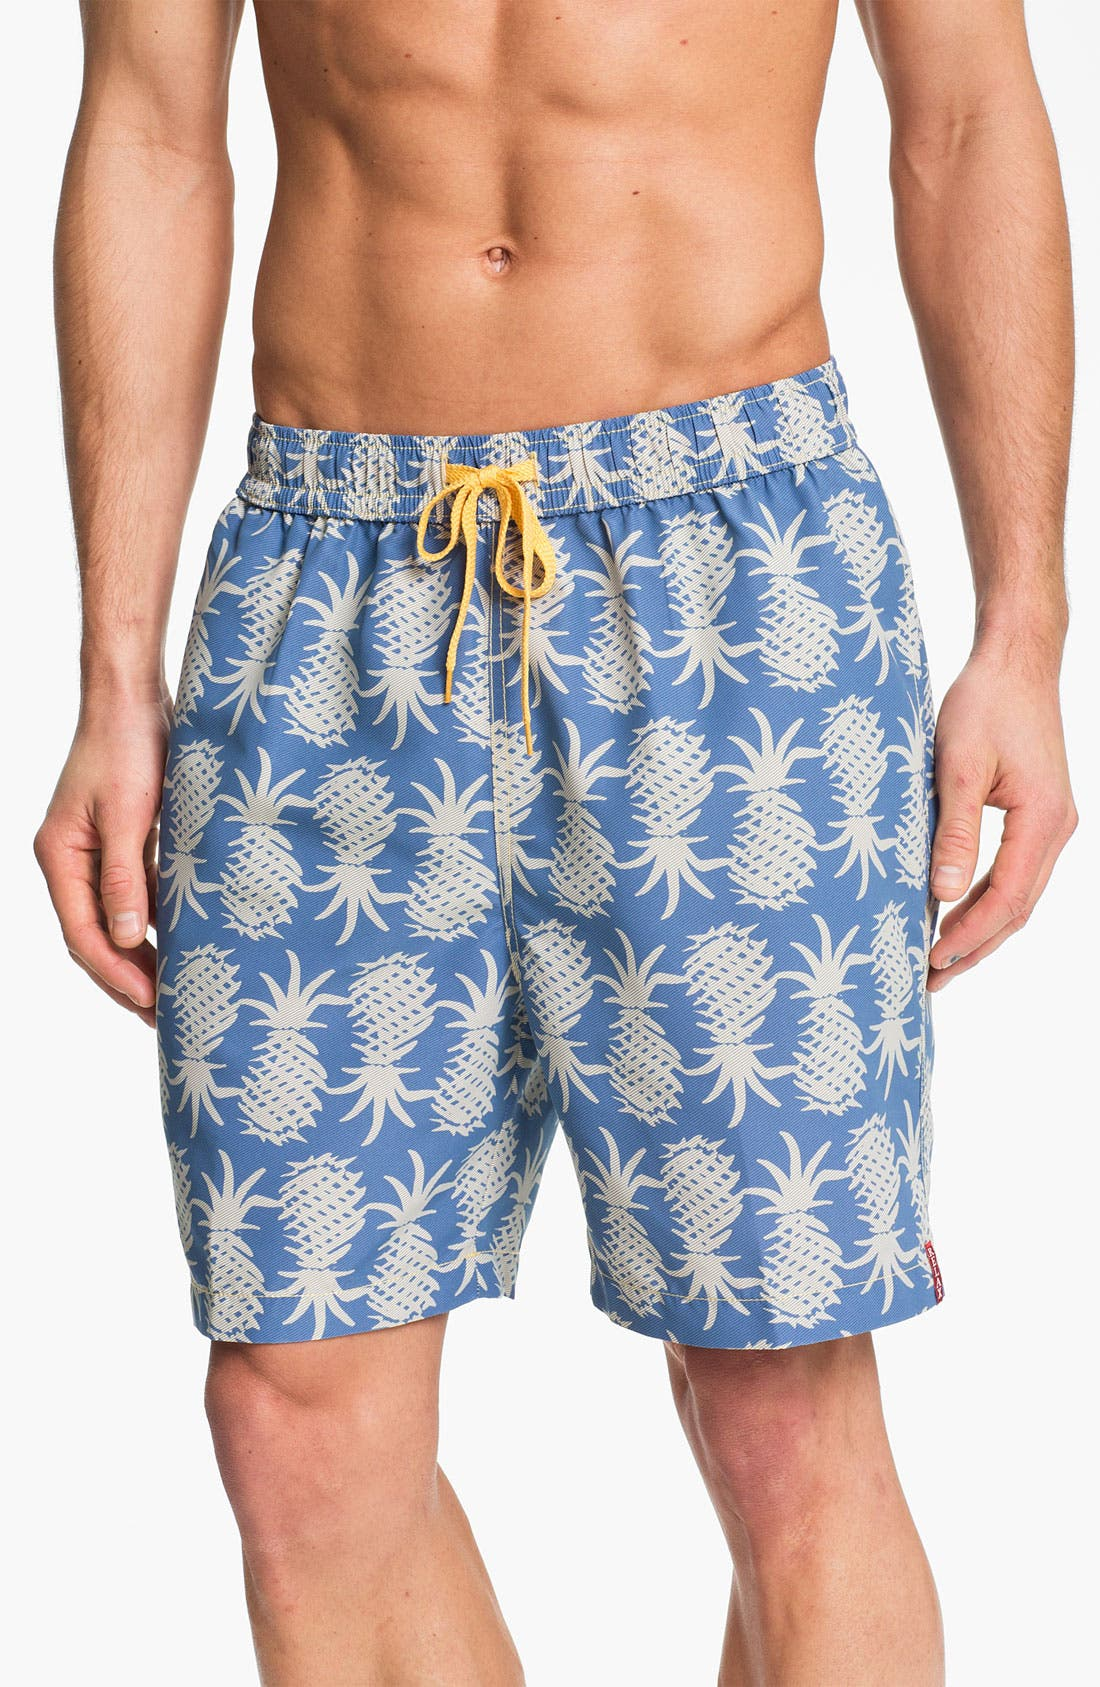 Alternate Image 1 Selected - Tommy Bahama Relax 'Pineapple Upside Down' Swim Trunks